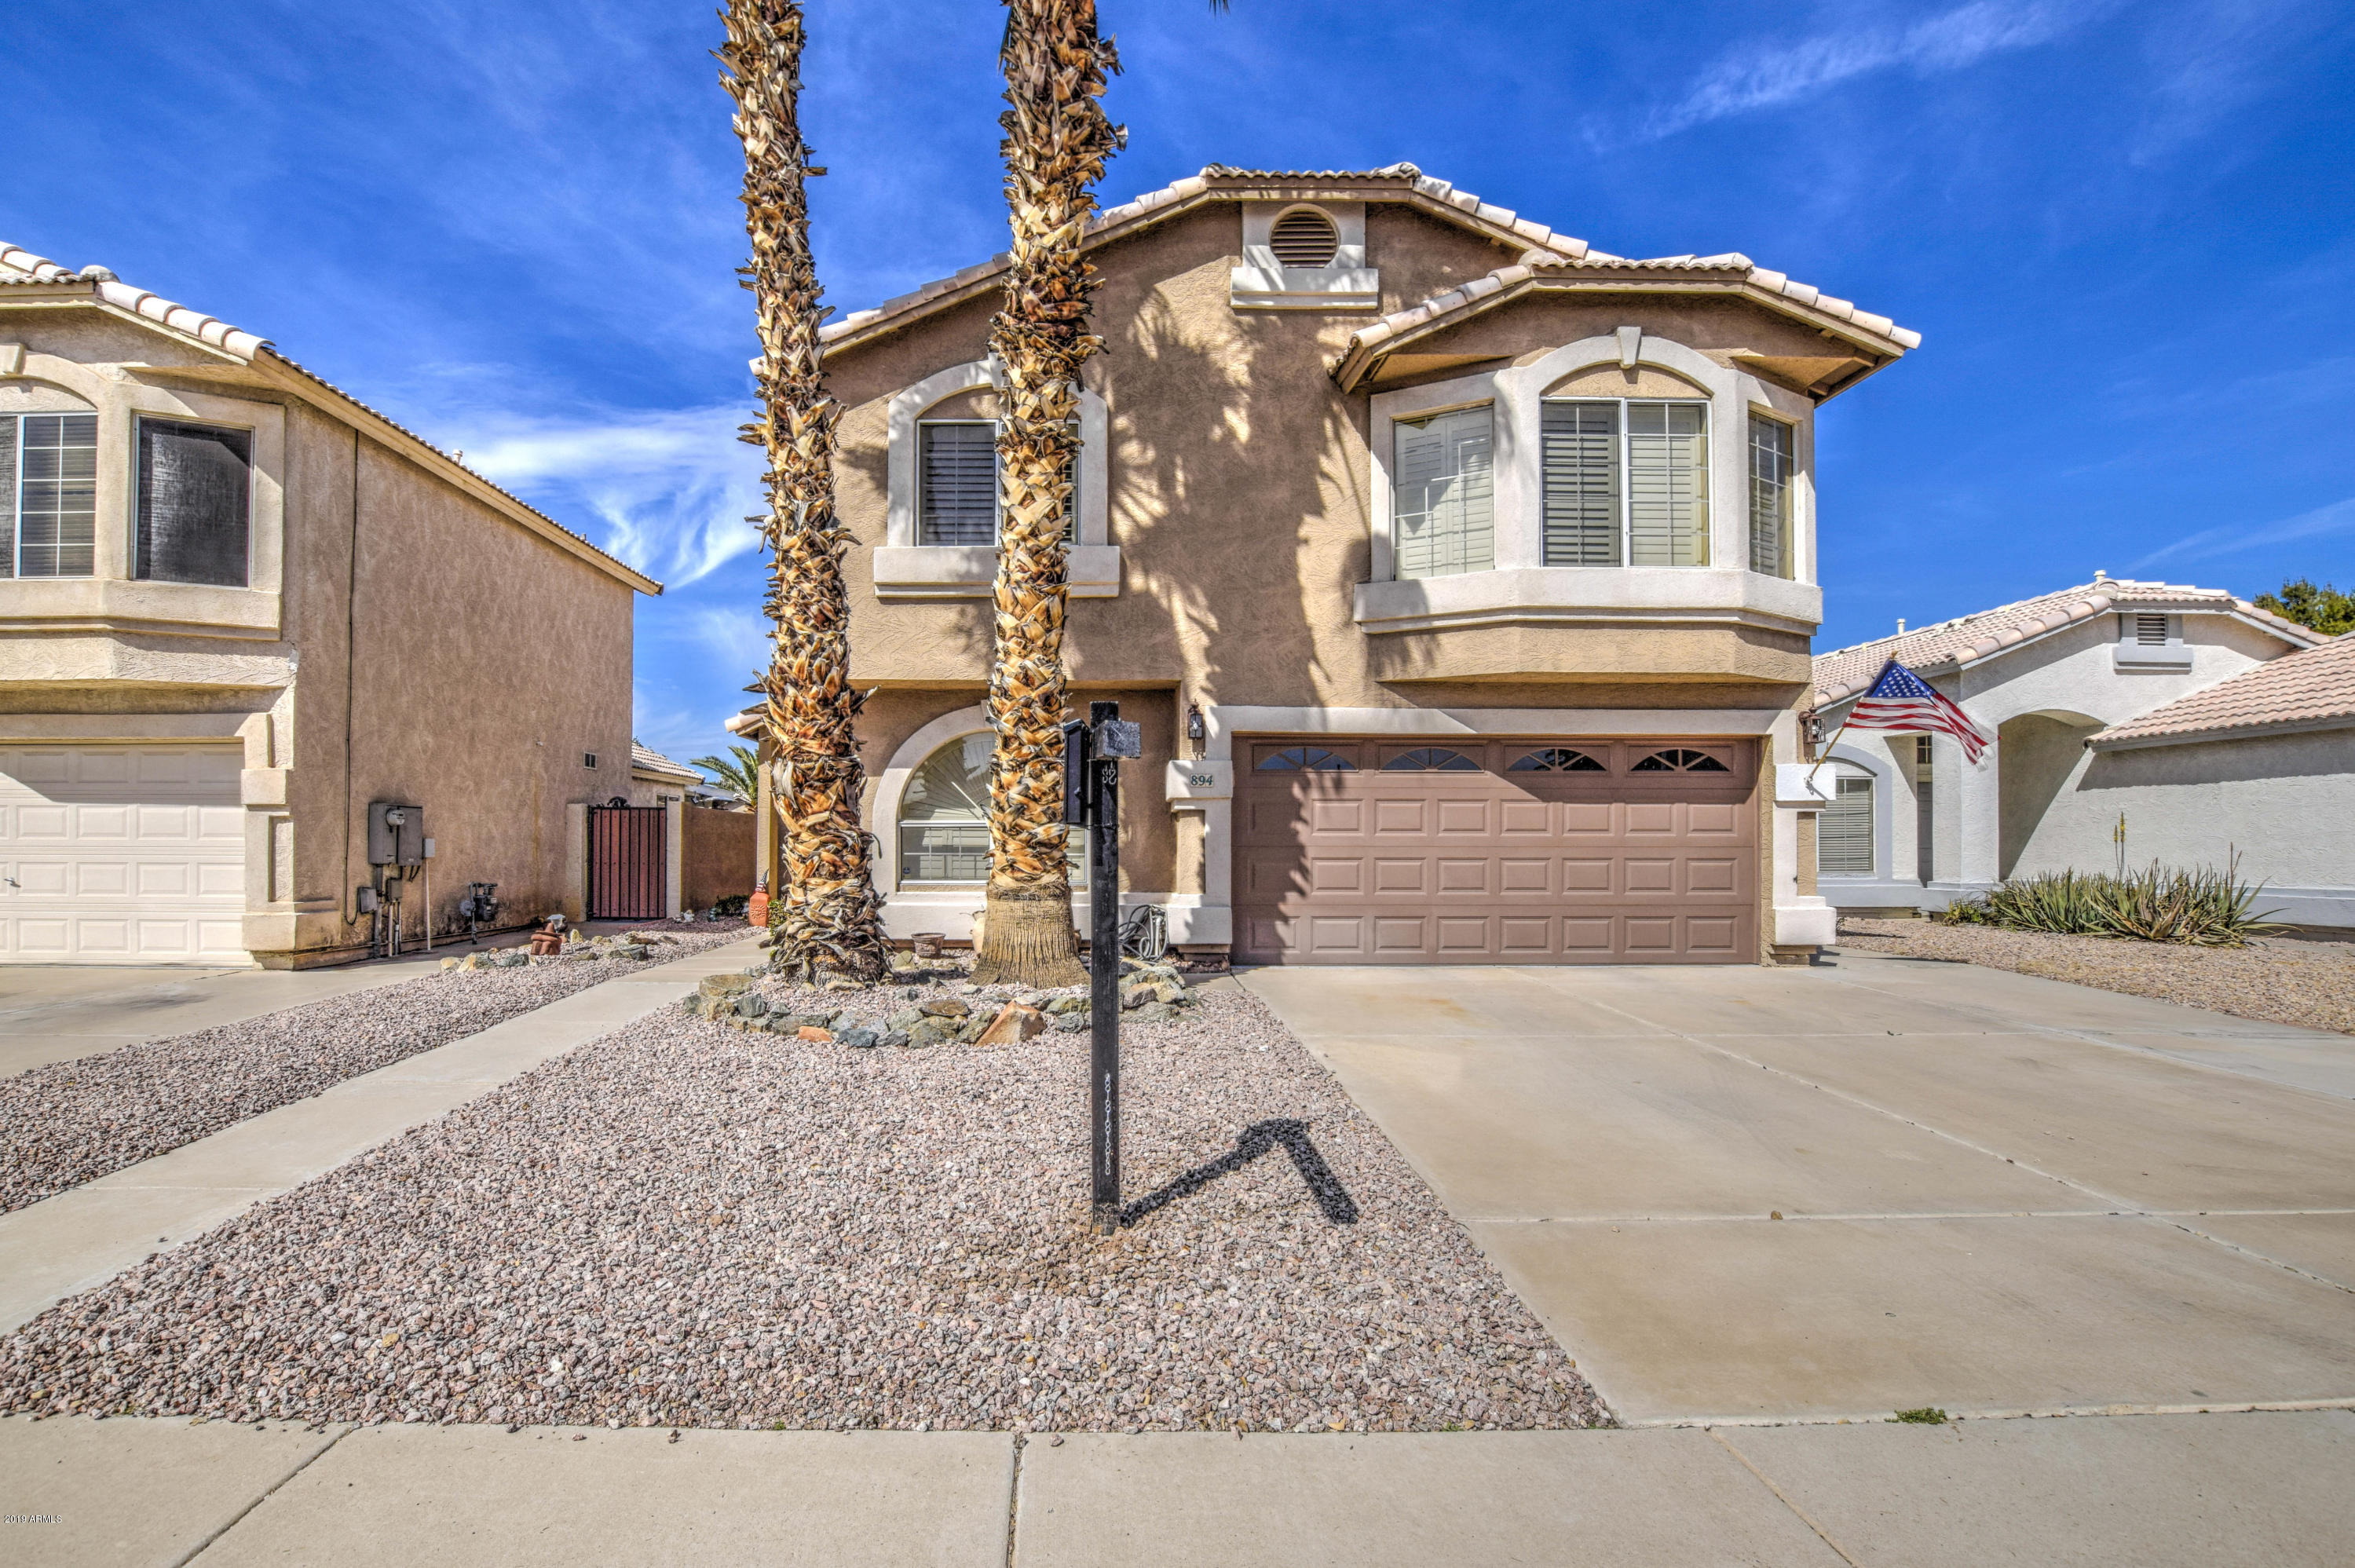 Photo of 894 E WHITTEN Street, Chandler, AZ 85225